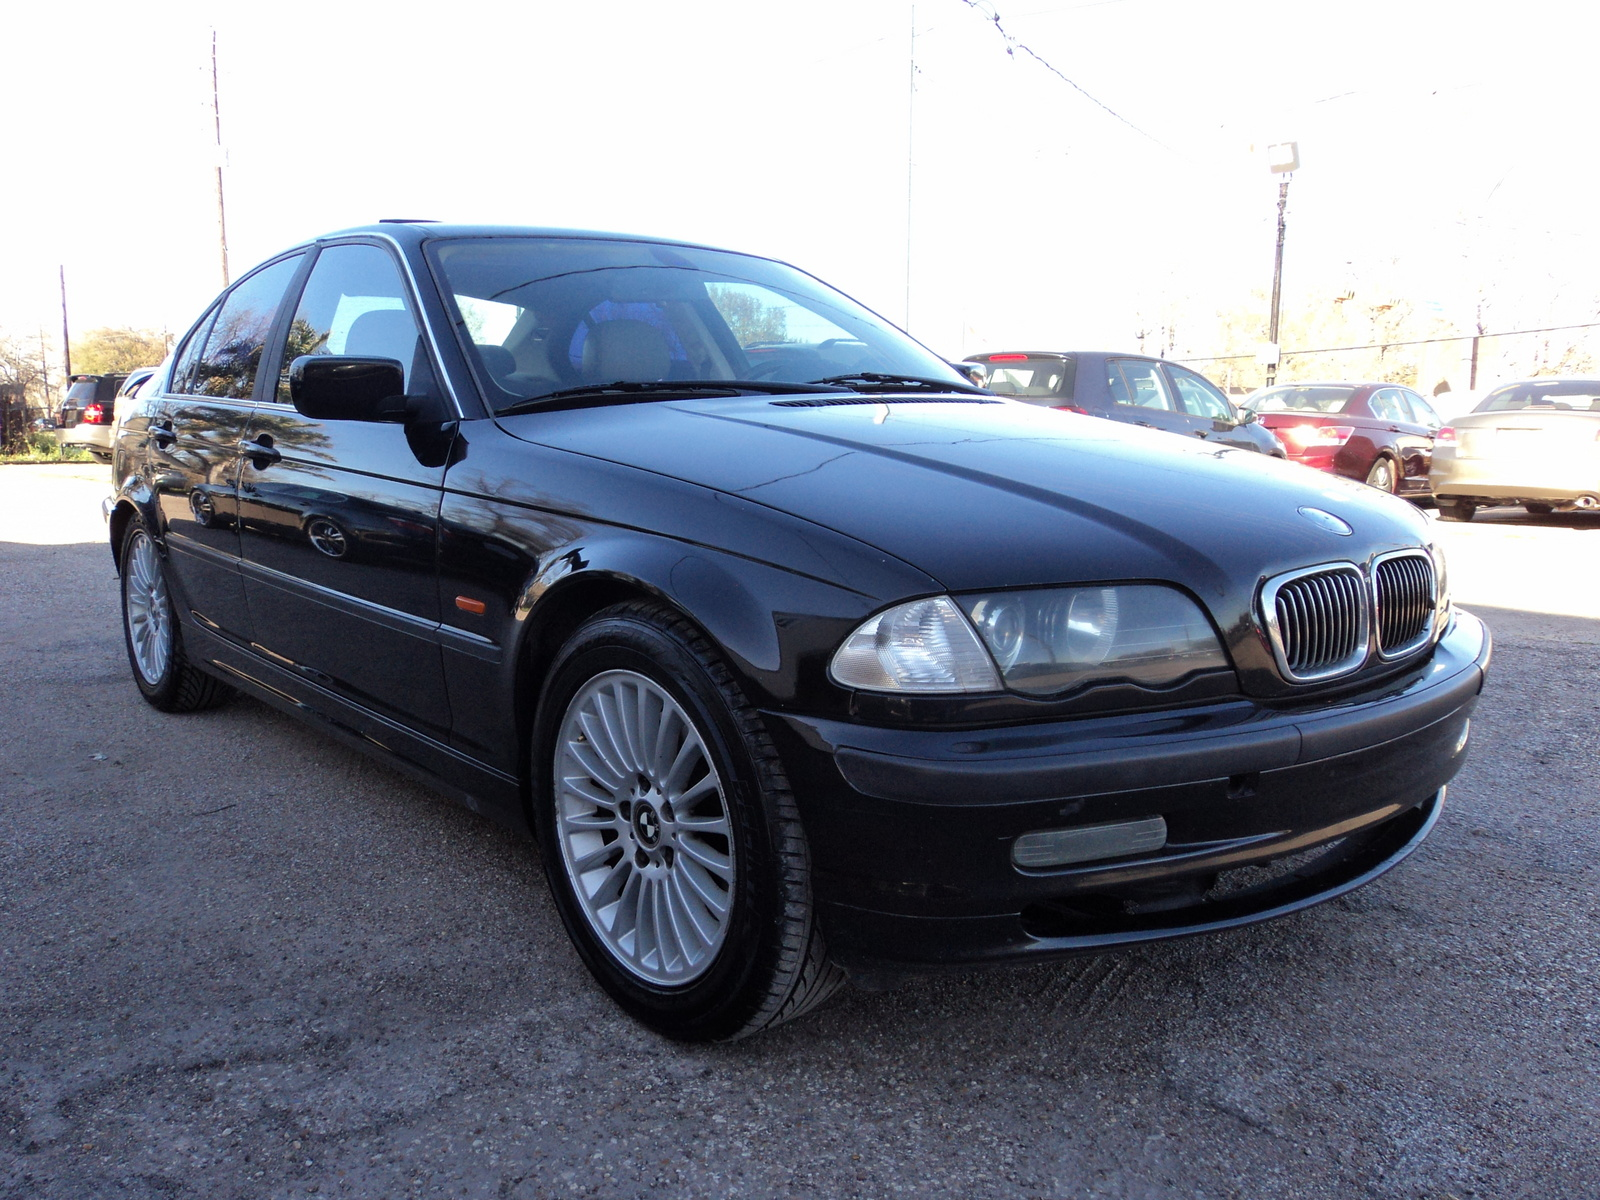 BMW 3 series 330xd 2001 photo - 5